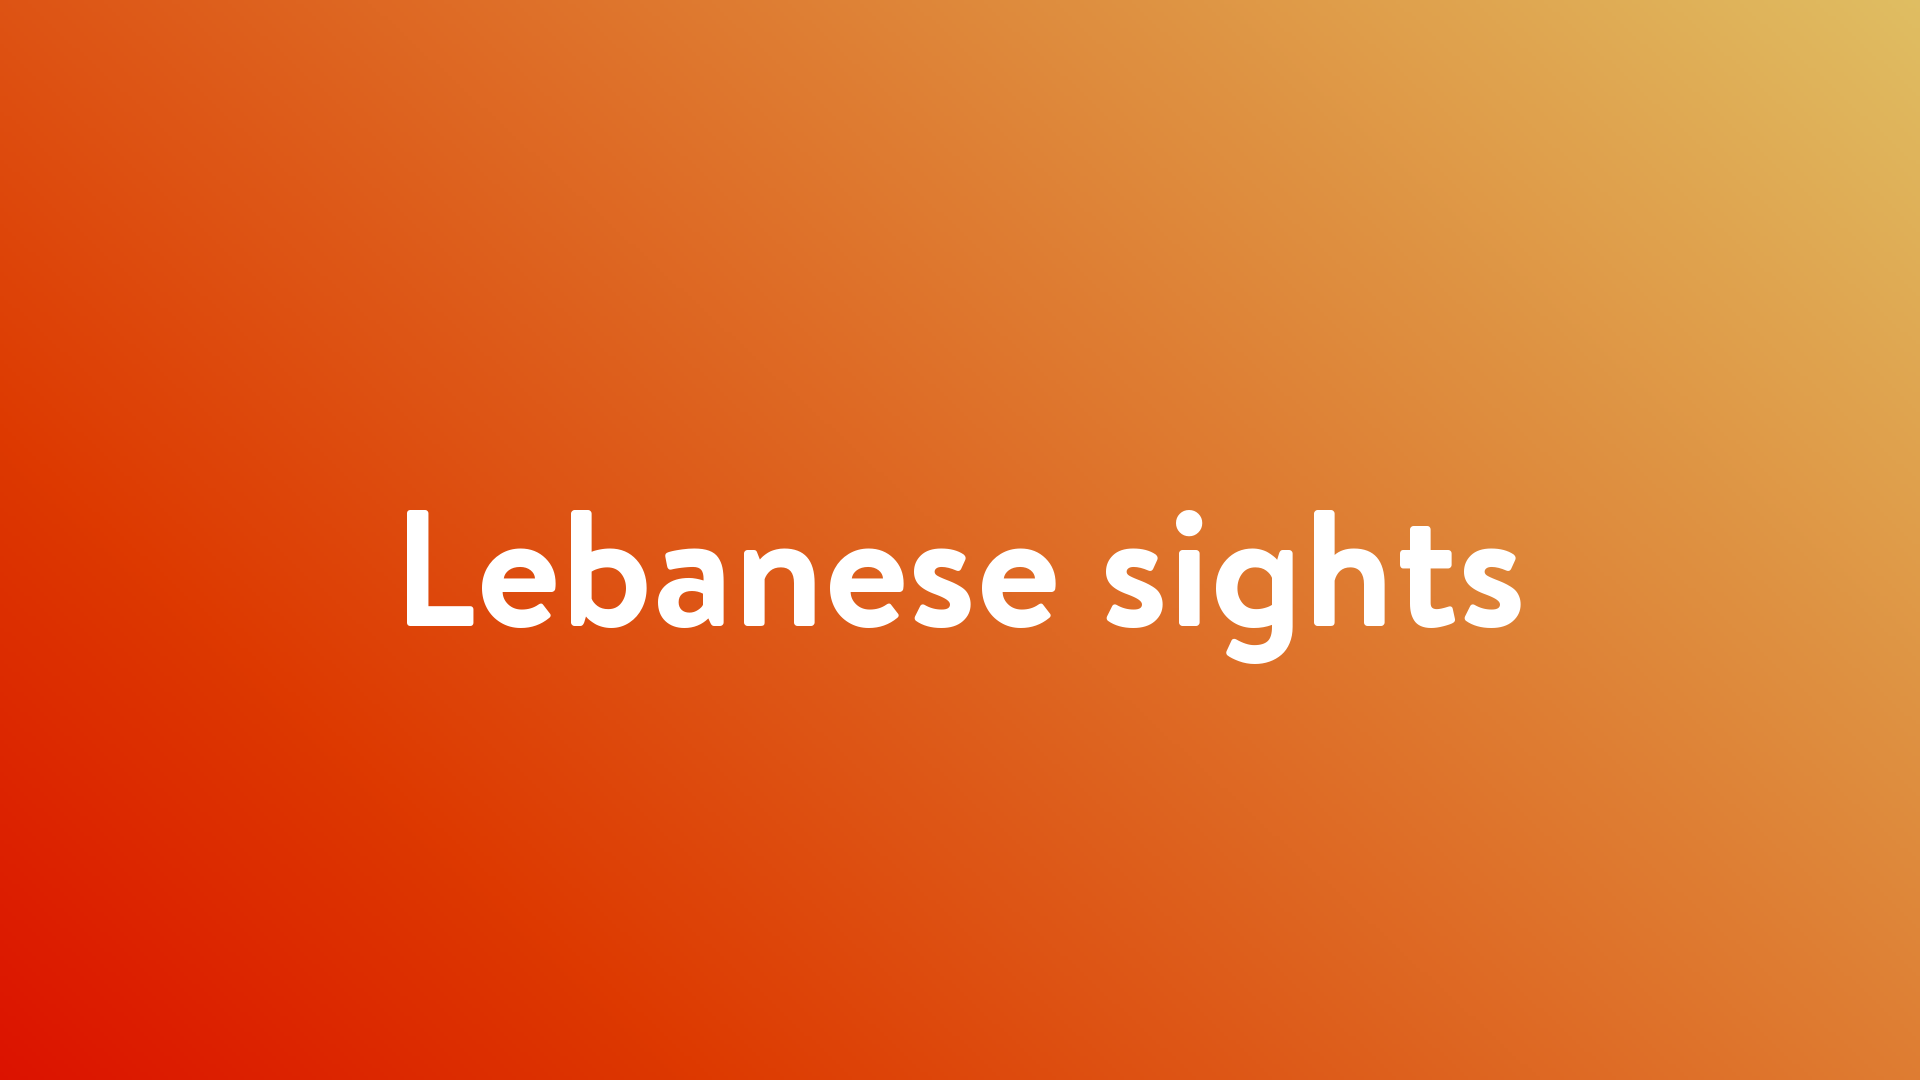 Stream And Watch Lebanese sights Online | Sling TV